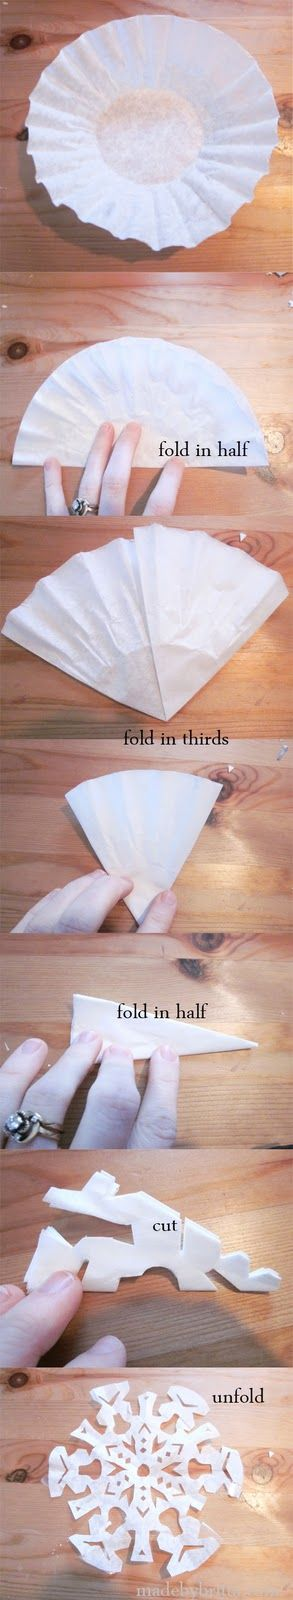 Coffee Filter Snowflakes. Great craft idea for the kids!